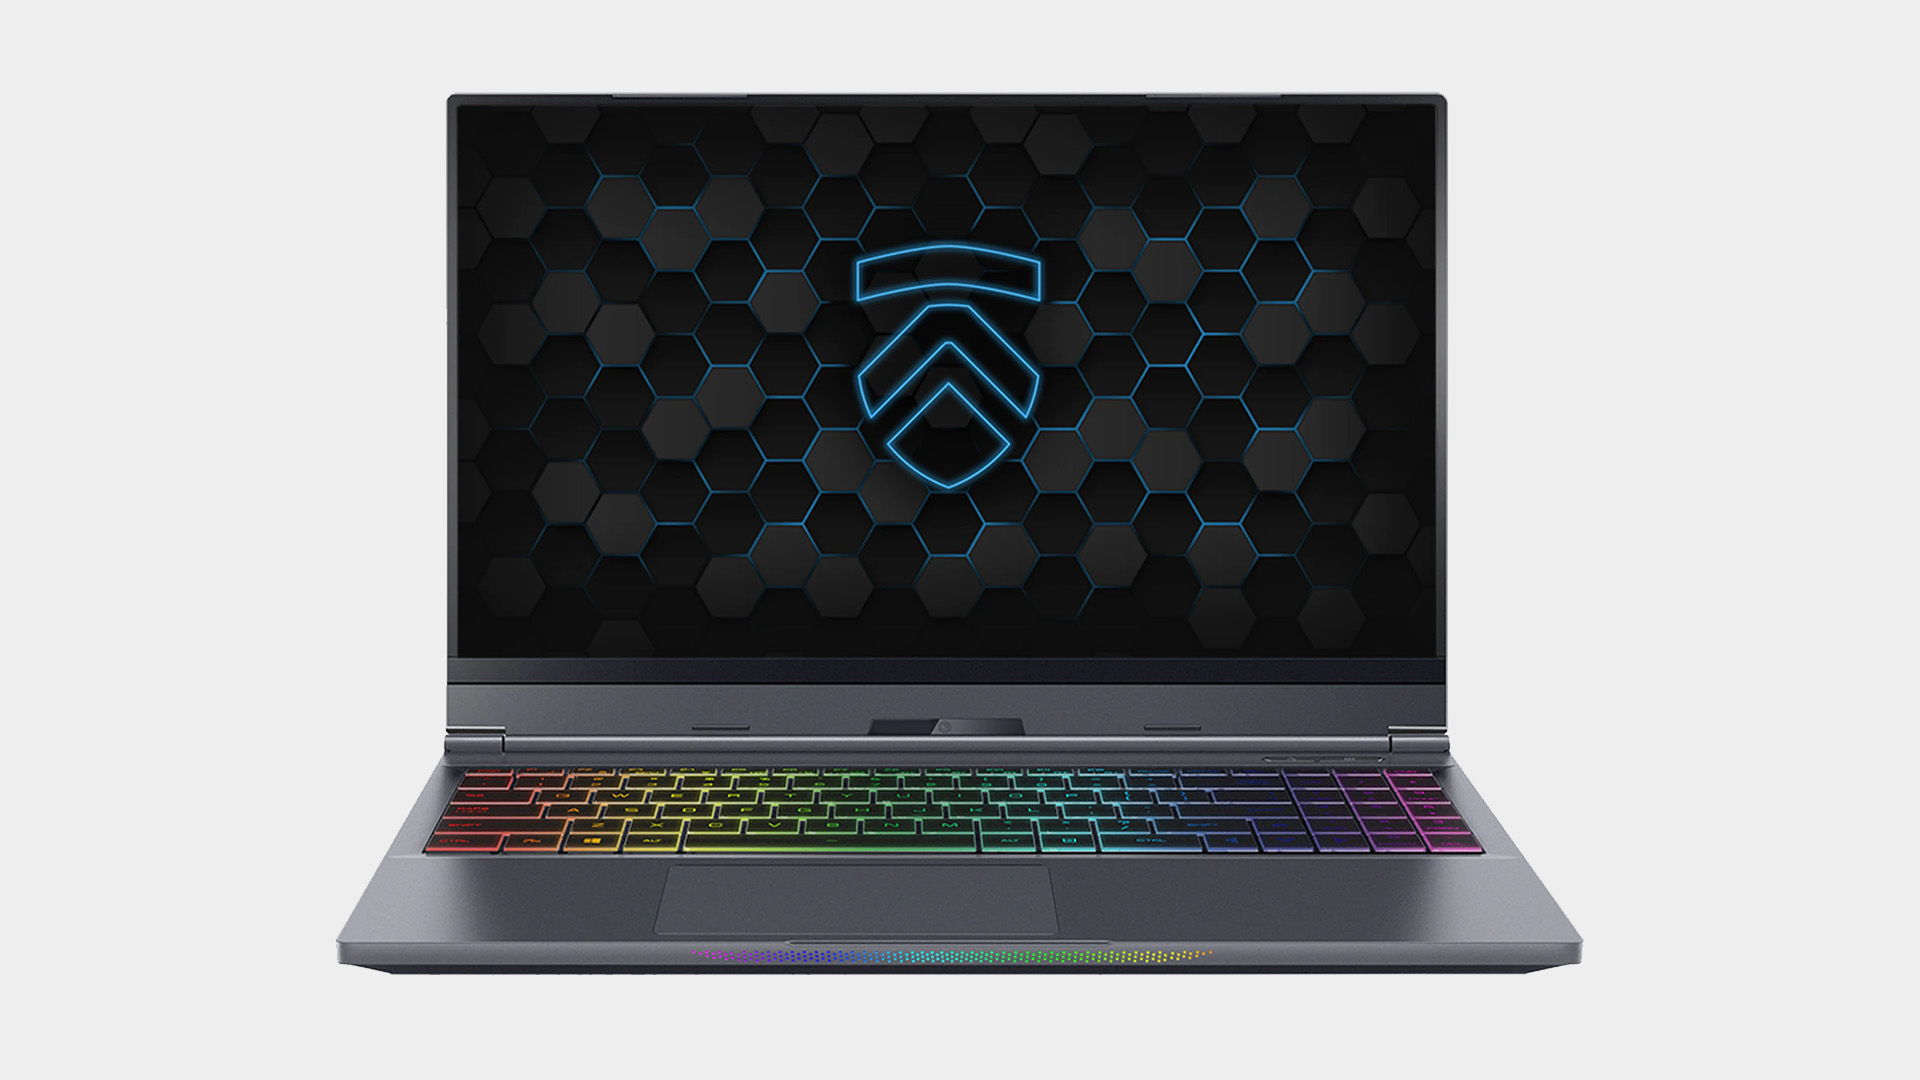 High-refresh 1440p gaming comes to laptops - finally